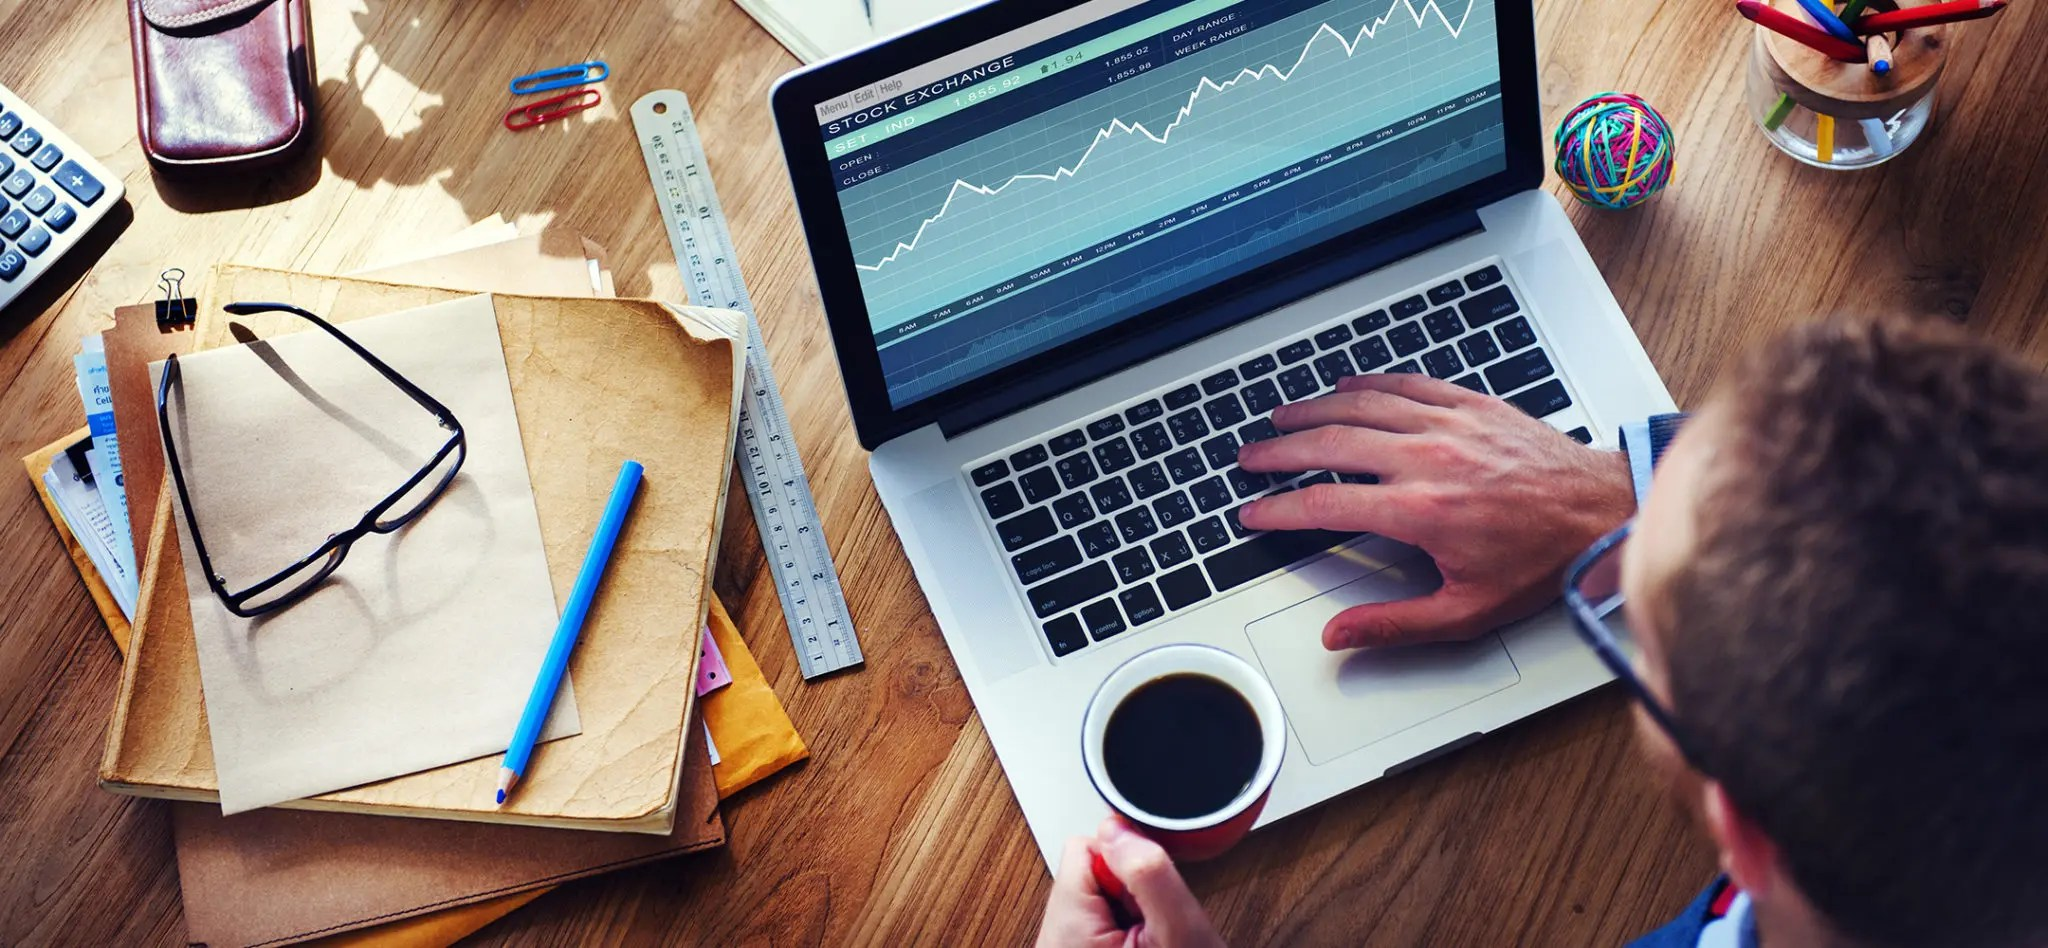 Looking down at a man on a computer with stock market information on the screen. His desk is covered with papers and other items.